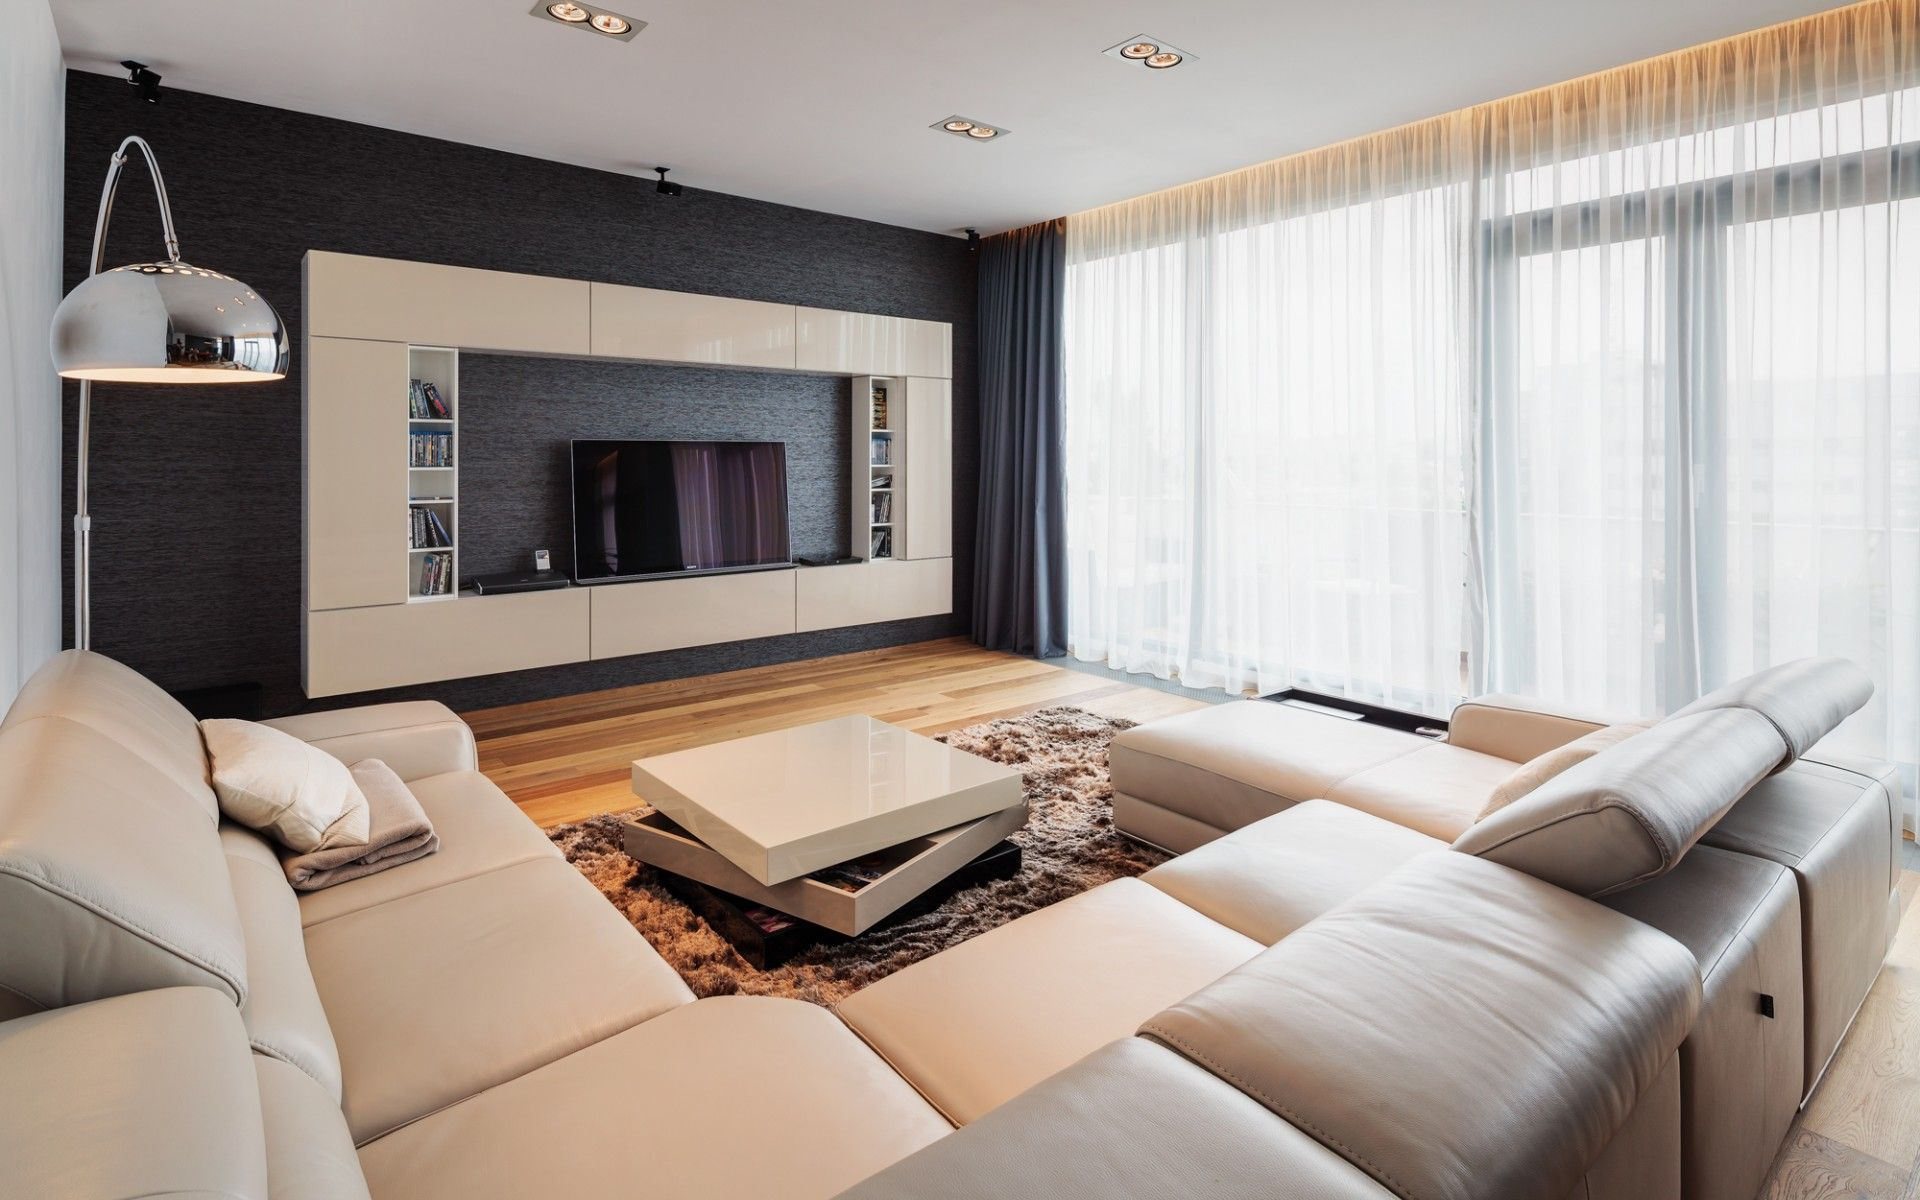 Wonderful Large Modern Tv Room Design With Cream Leather L Shaped Sofa Also Brown Laminated Wooden Floor